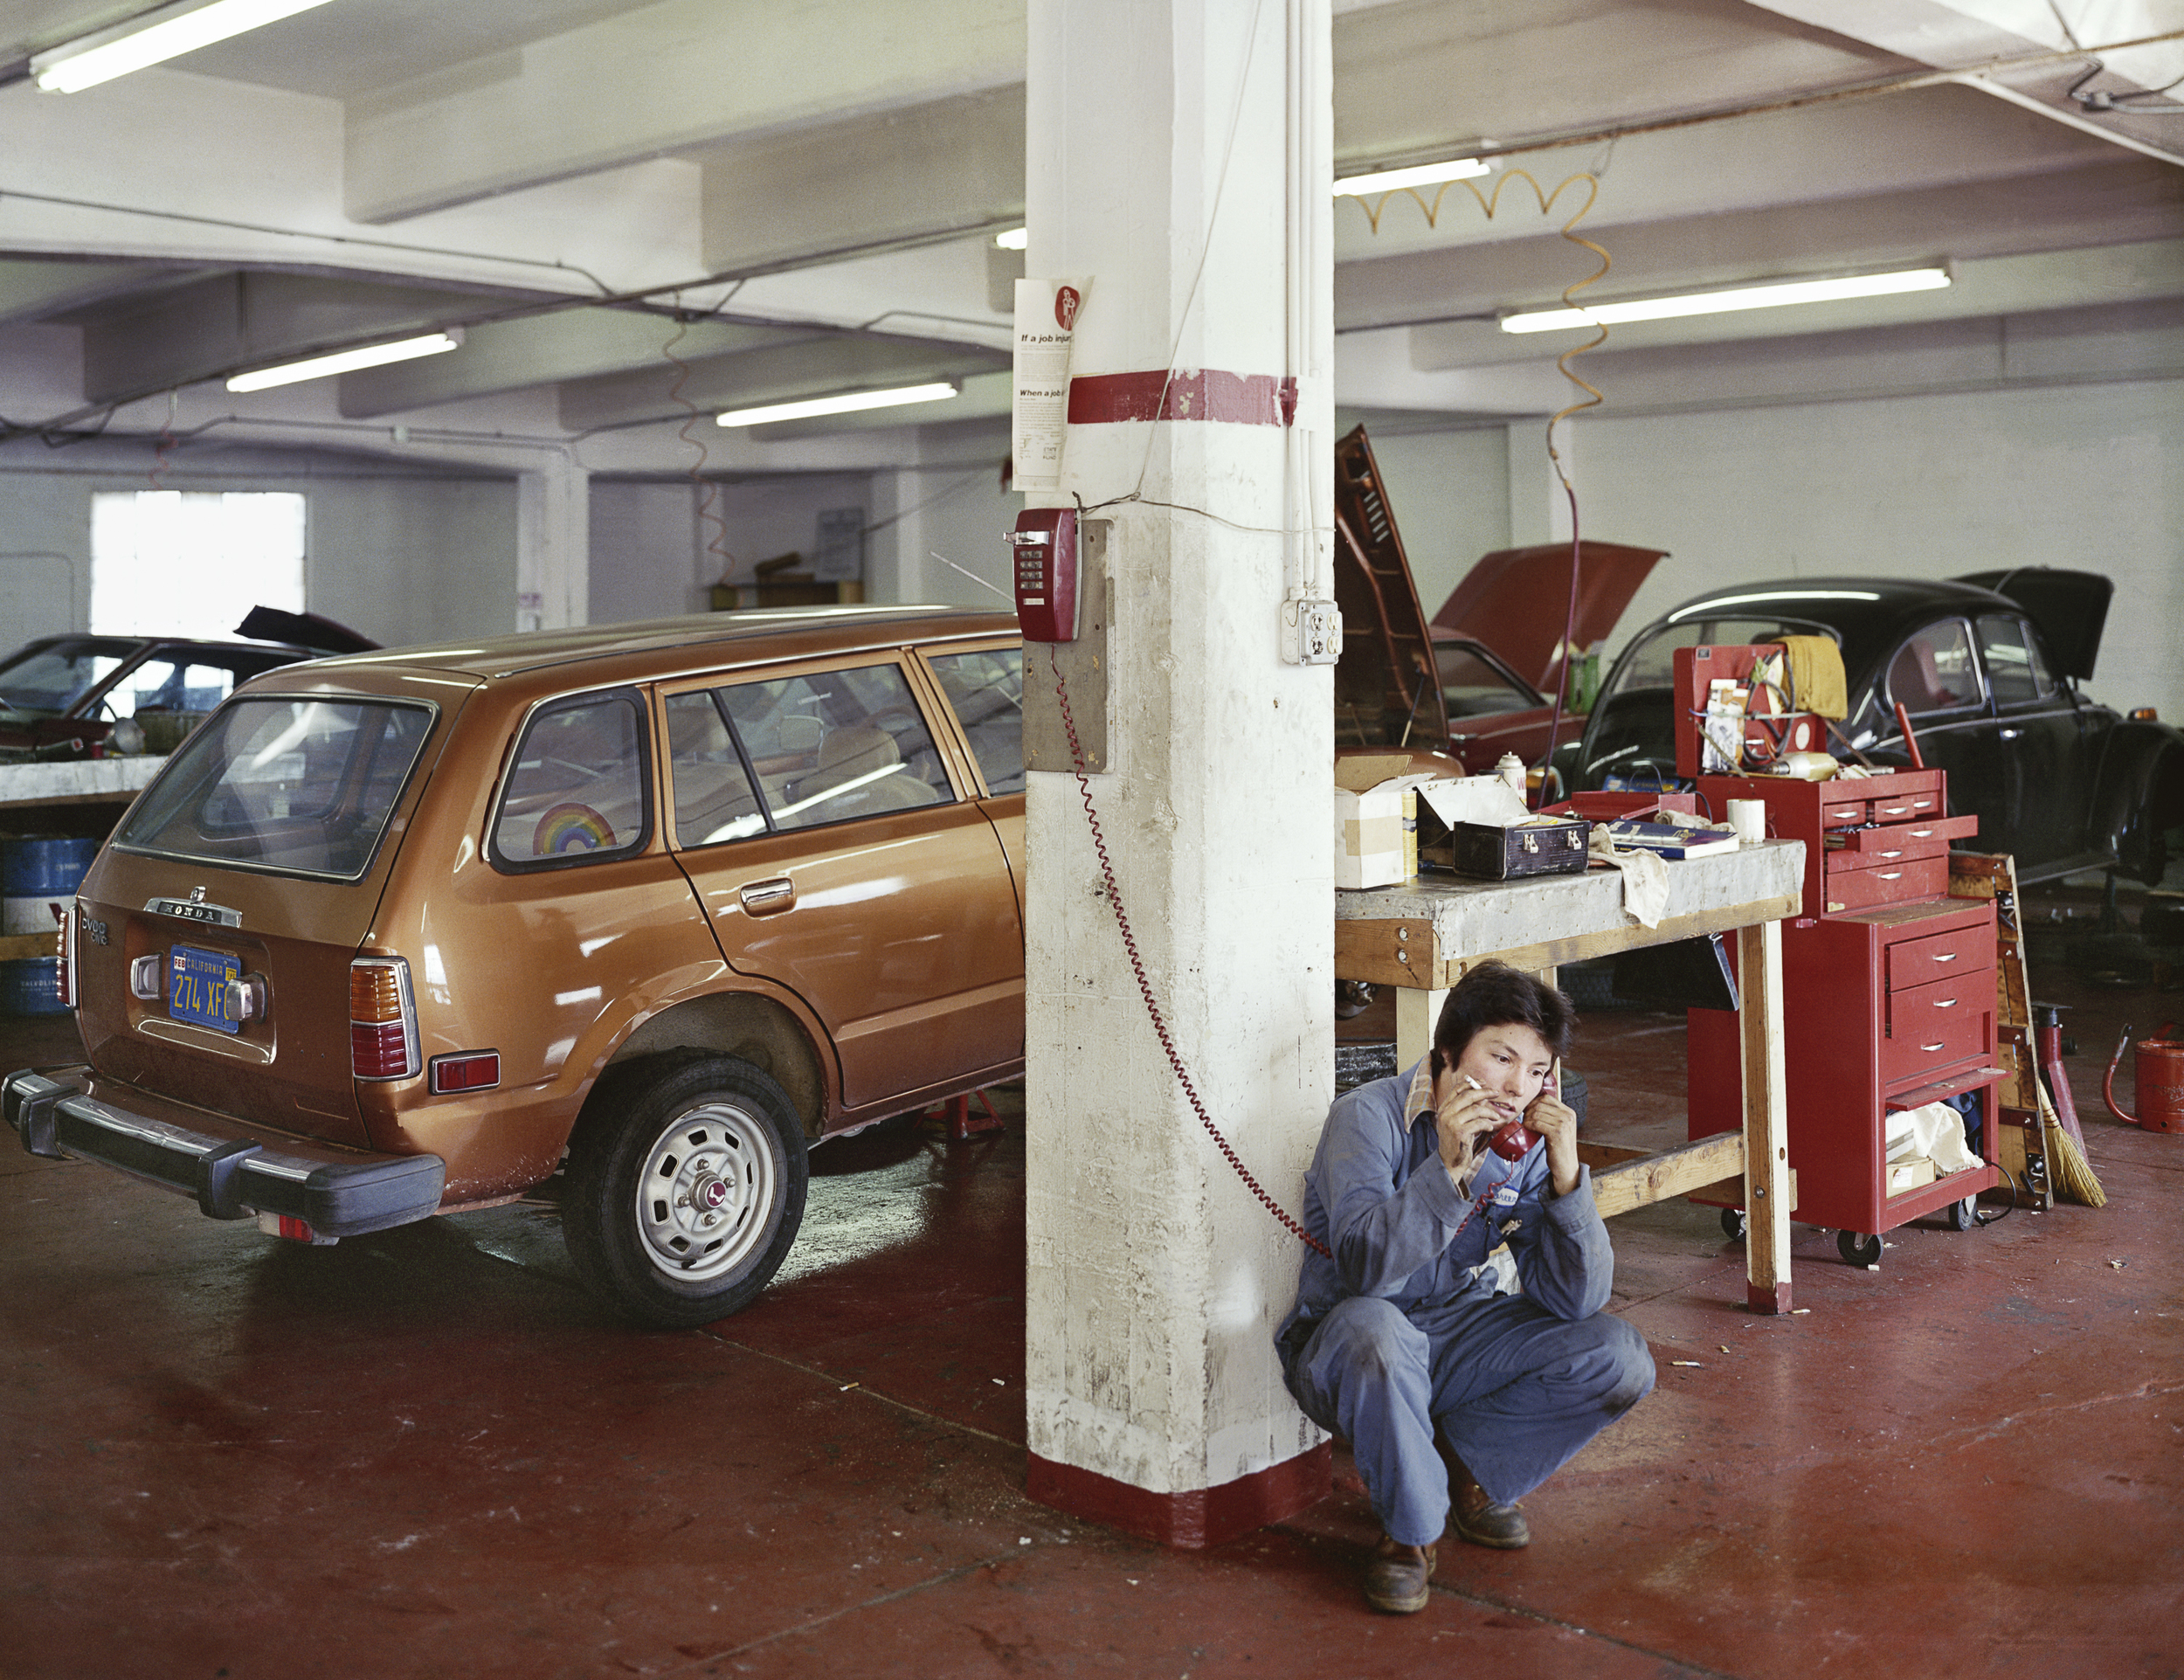 """Labyris Auto Repair, """"Complete Car Care By Women"""", 240 6th Street, 1982 Archival Pigment Print, 2016 16 x 20 inches, edition of 5 20 x 24 inches, edition of 2 30 x 40 inches, edition of 2"""